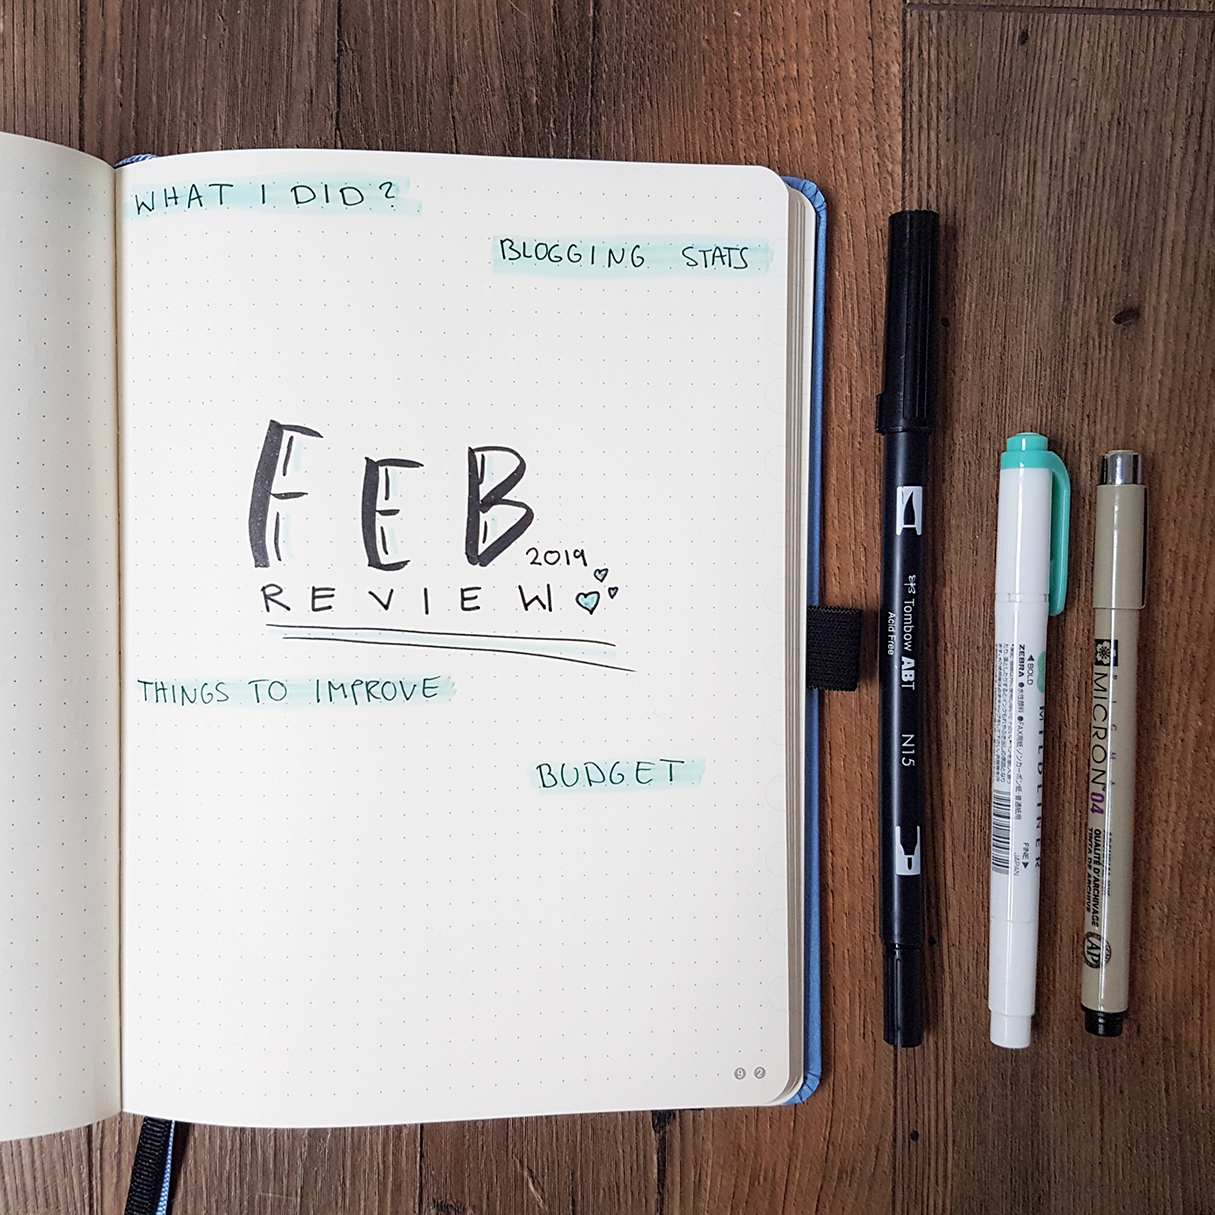 bullet-journal-work-blog-business-collections